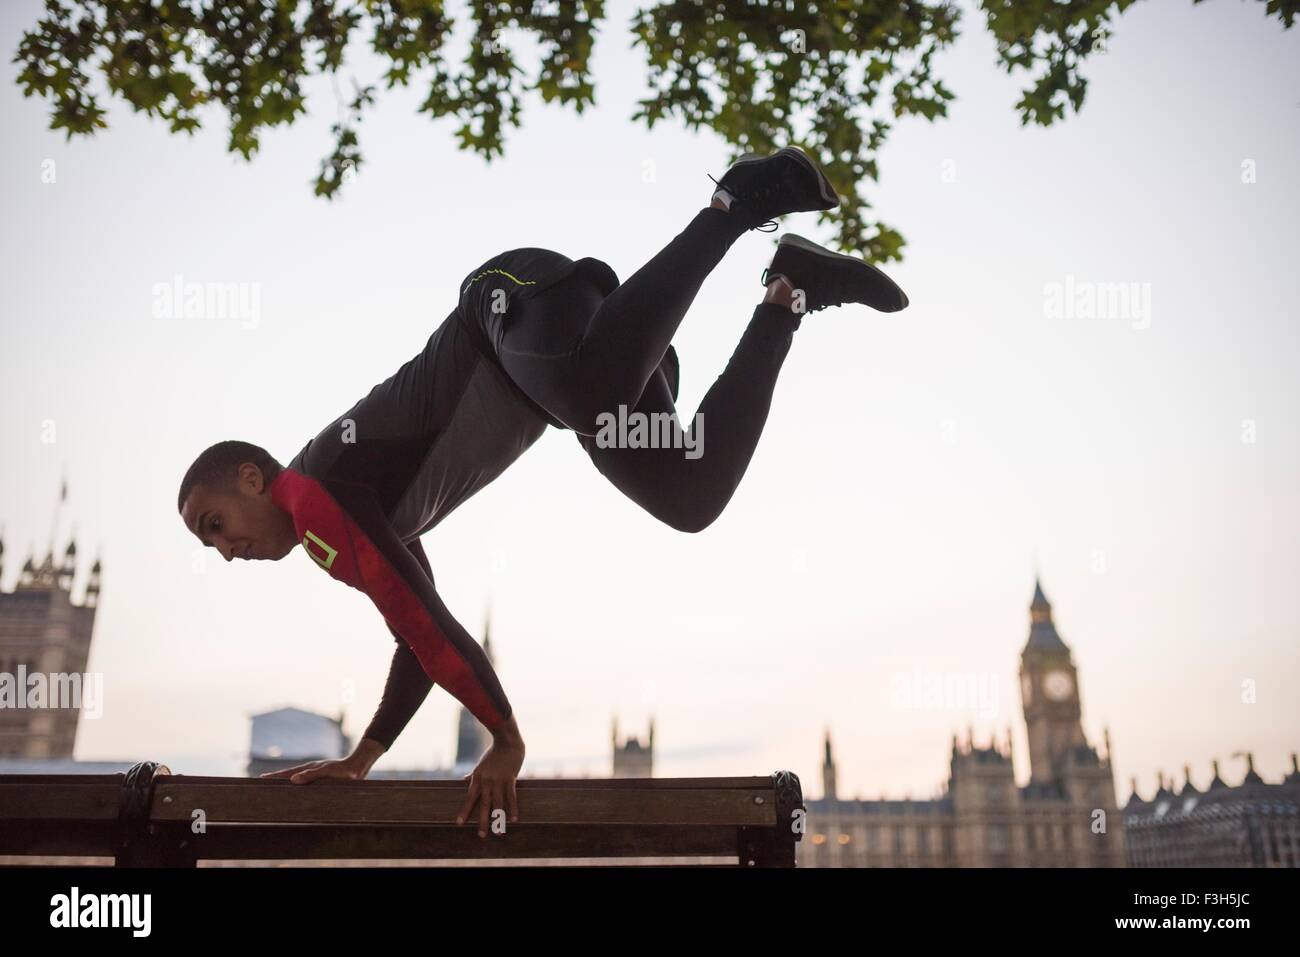 Young man jumping over park bench on Southbank, London, UK - Stock Image